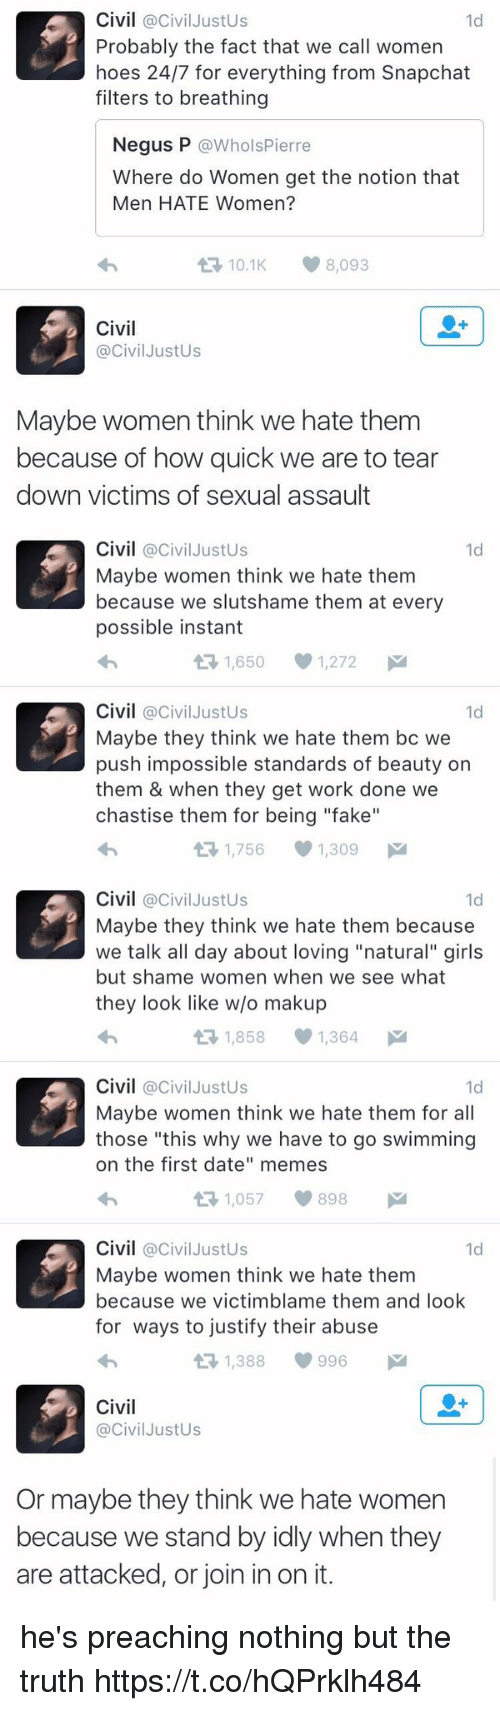 """Fake, Girls, and Hoes: Civil @Civil JustUs  Probably the fact that we call women  hoes 24/7 for everything from Snapchat  filters to breathing  1d  Negus P @WholsPierre  Where do Women get the notion that  Men HATE Women?  わ  10.1K8,093  Civil  @CivilJustUs  Maybe women think we hate them  because of how quick we are to tear  down victims of sexual assault   Civil @CivilJustUs  Maybe women think we hate them  because we slutshame them at every  possible instant  わ  1d  1,650  1,272  Civil @CivilJustUs  Maybe they think we hate them bc we  push impossible standards of beauty on  them & when they get work done we  chastise them for being """"fake""""  わ  1d  1,756  1,309   Civil @CivilJustUs  Maybe they think we hate them because  we talk all day about loving """"natural"""" girls  but shame women when we see what  they look like w/o makup  わ  1d  1,8581,364  Civil @CivilJustUs  Maybe women think we hate them for all  those """"this why we have to go swimming  on the first date"""" memes  わ  1d  1,057898  Civil @civilJustUs  Maybe women think we hate them  because we victimblame them and loolk  for ways to justify their abuse  わ  1d  1,388  996   Civil  @CivilJustUs  Or maybe they think we hate women  because we stand by idly when they  are attacked, or join in on it. he's preaching nothing but the truth https://t.co/hQPrklh484"""